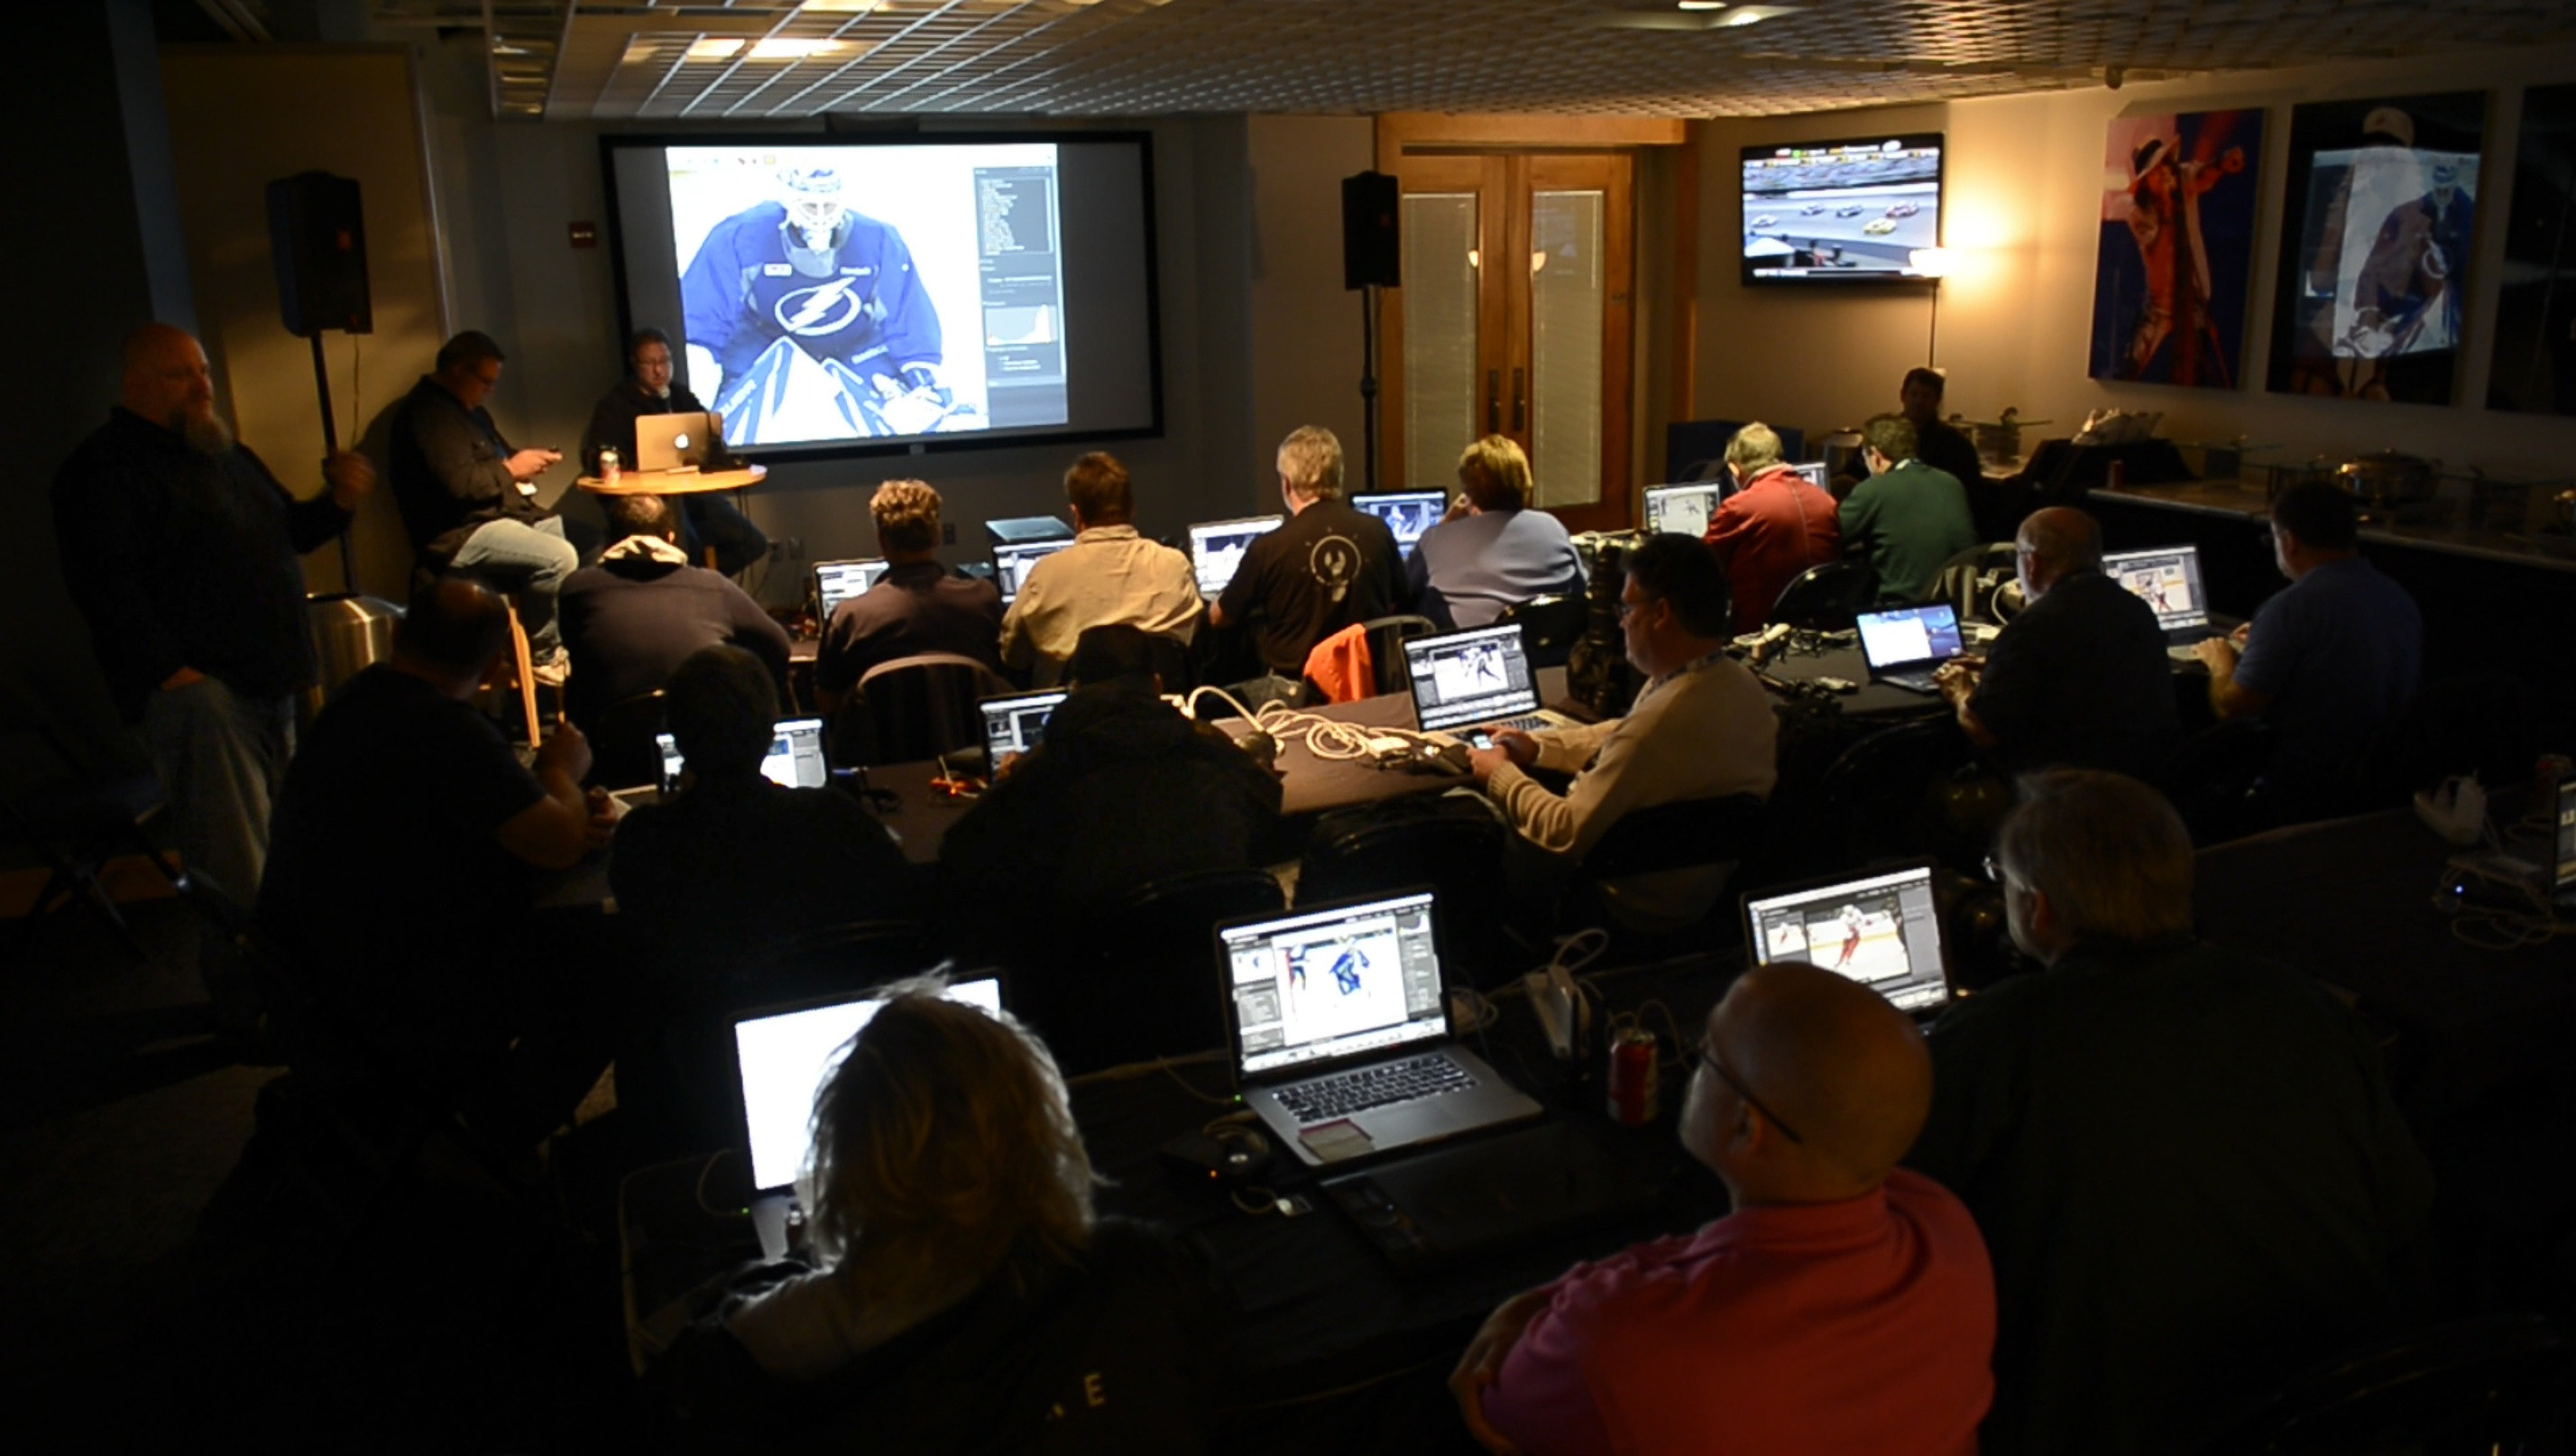 Res: 2856x1614, Above: Here's our workroom for the weekend, inside the VIP Club at the  Tampa Bay Times Forum. Sweet digs! (Photo by Brad Moore)